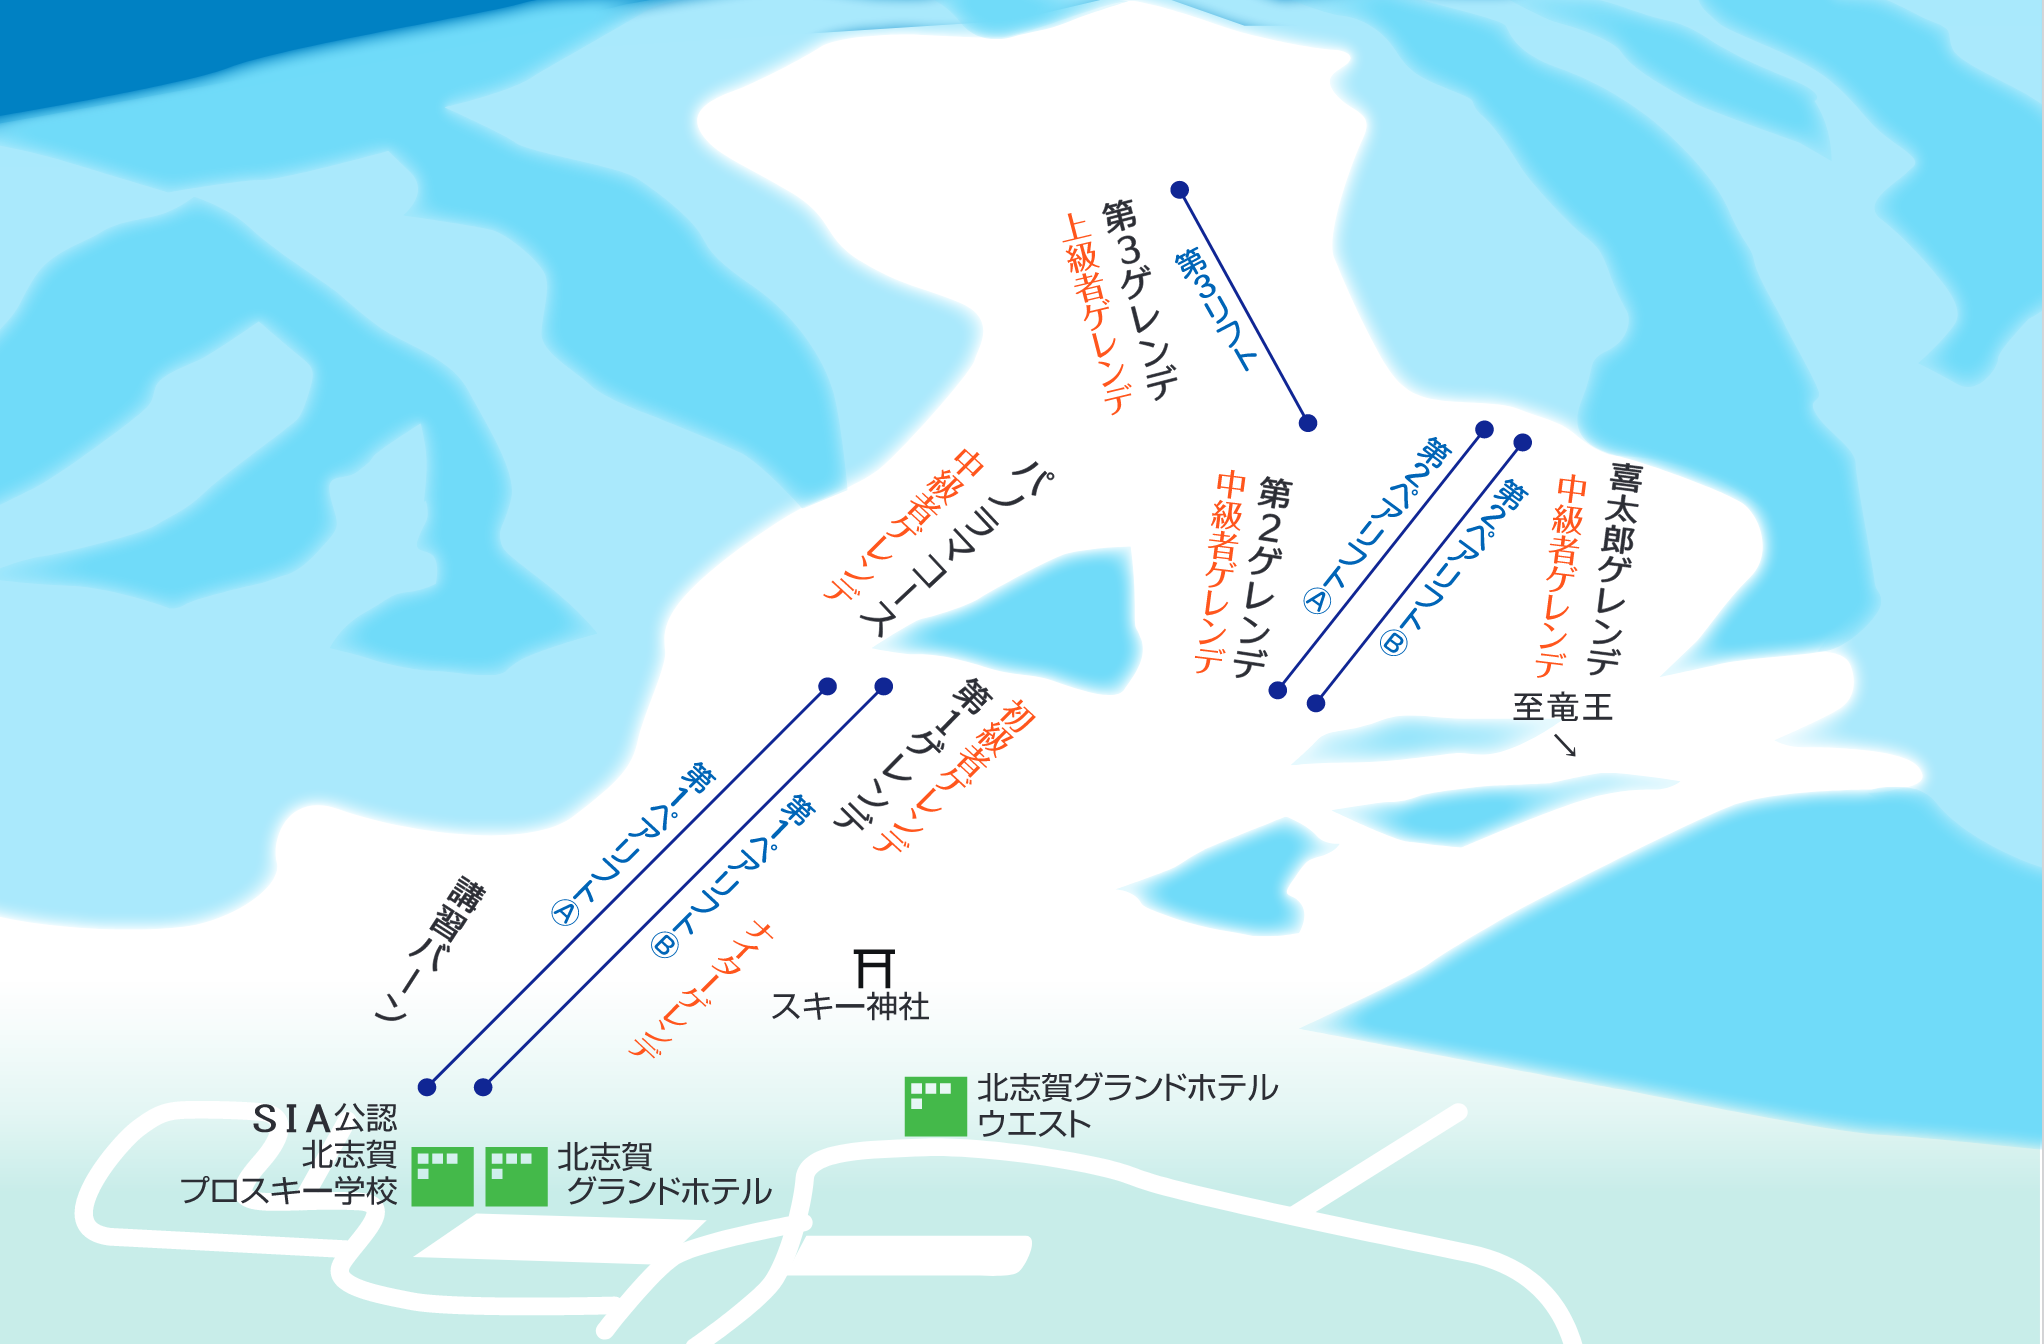 komaruyama-course-map